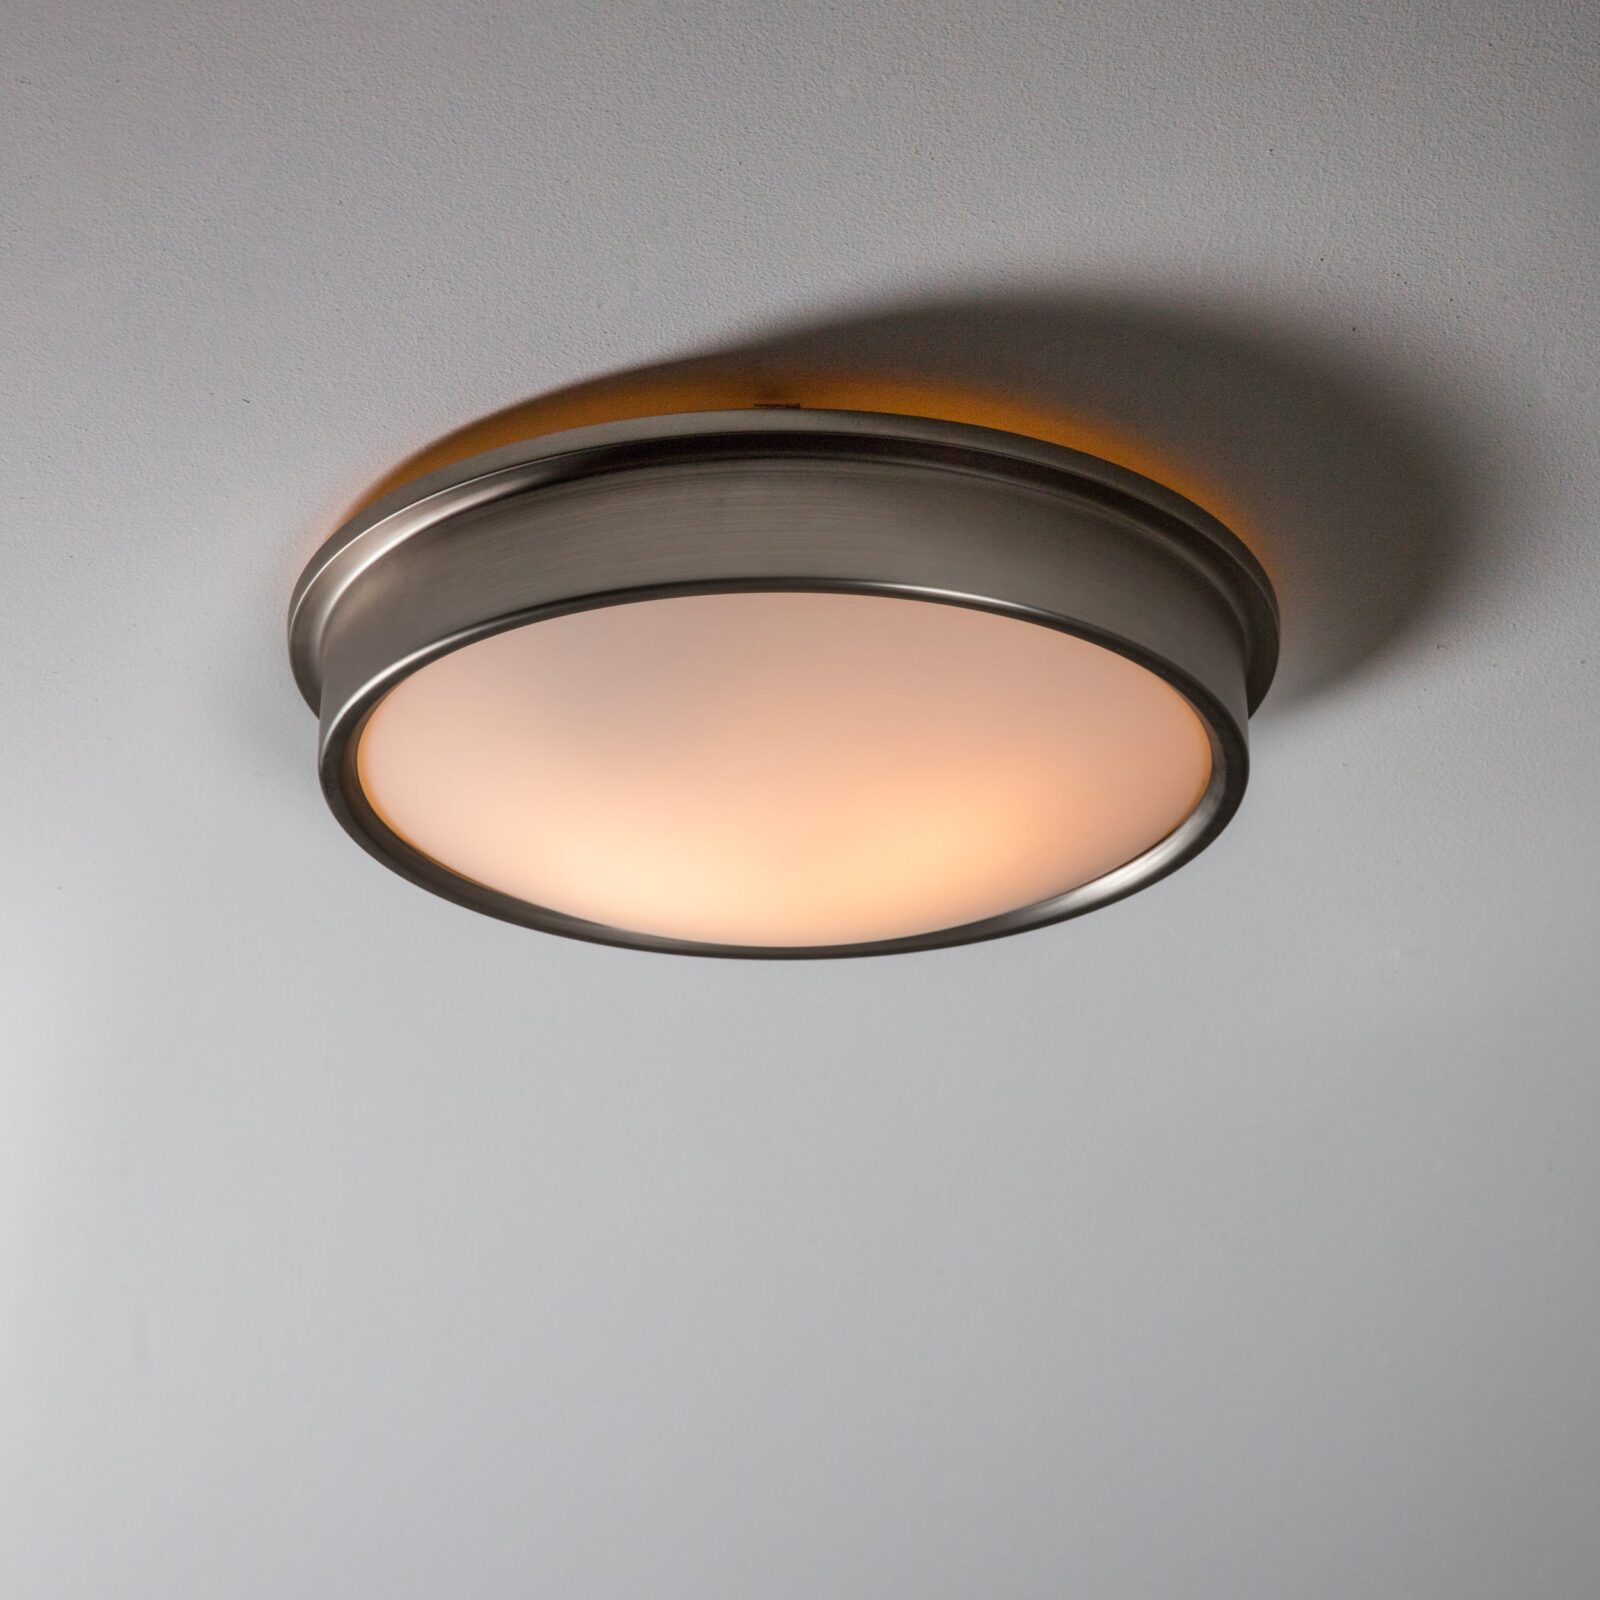 Ladbroke Bathroom Light Satin Nickel